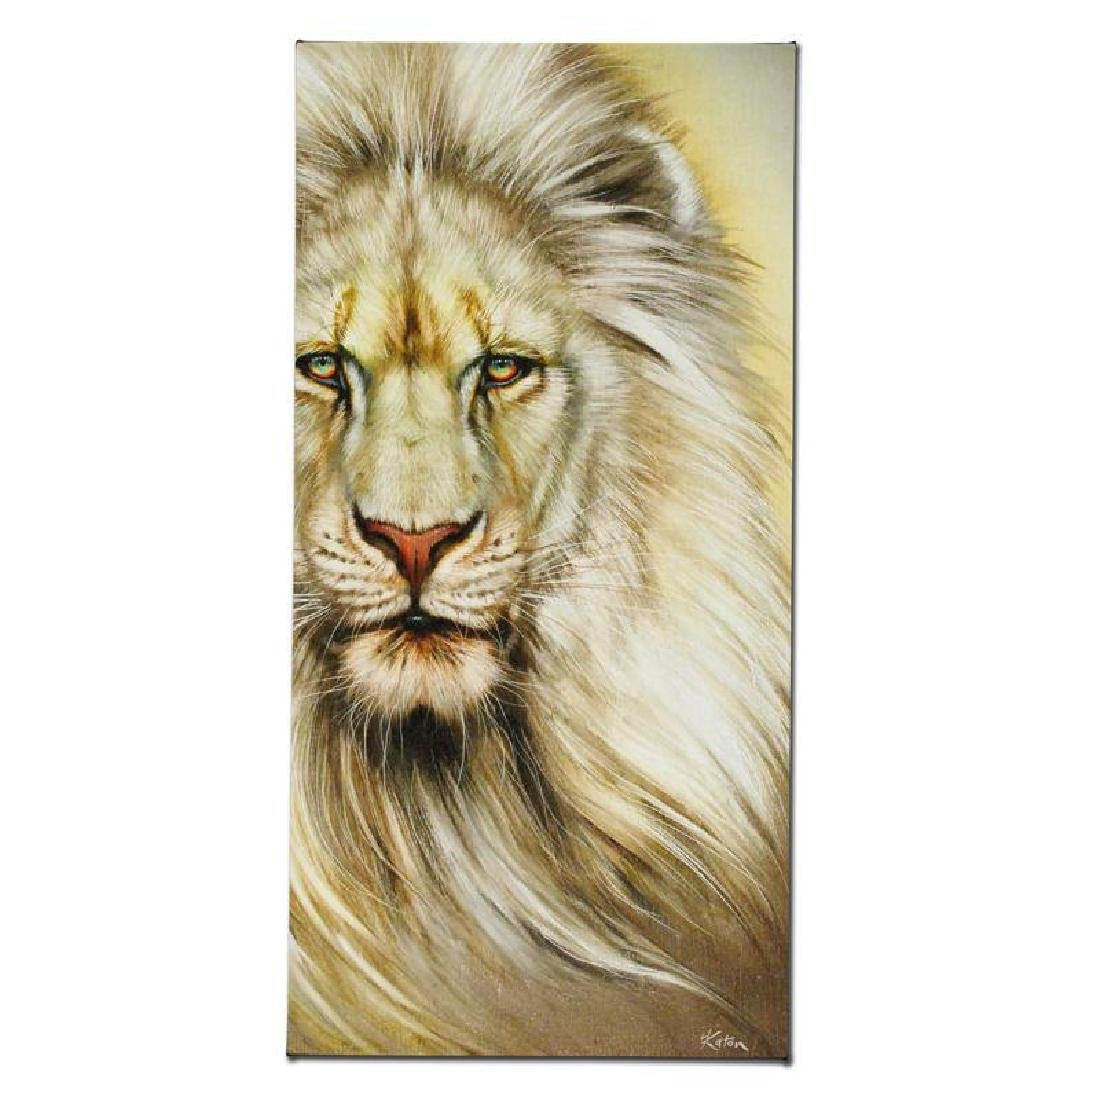 """White Lion"" Limited Edition Giclee on Canvas by Martin - 2"